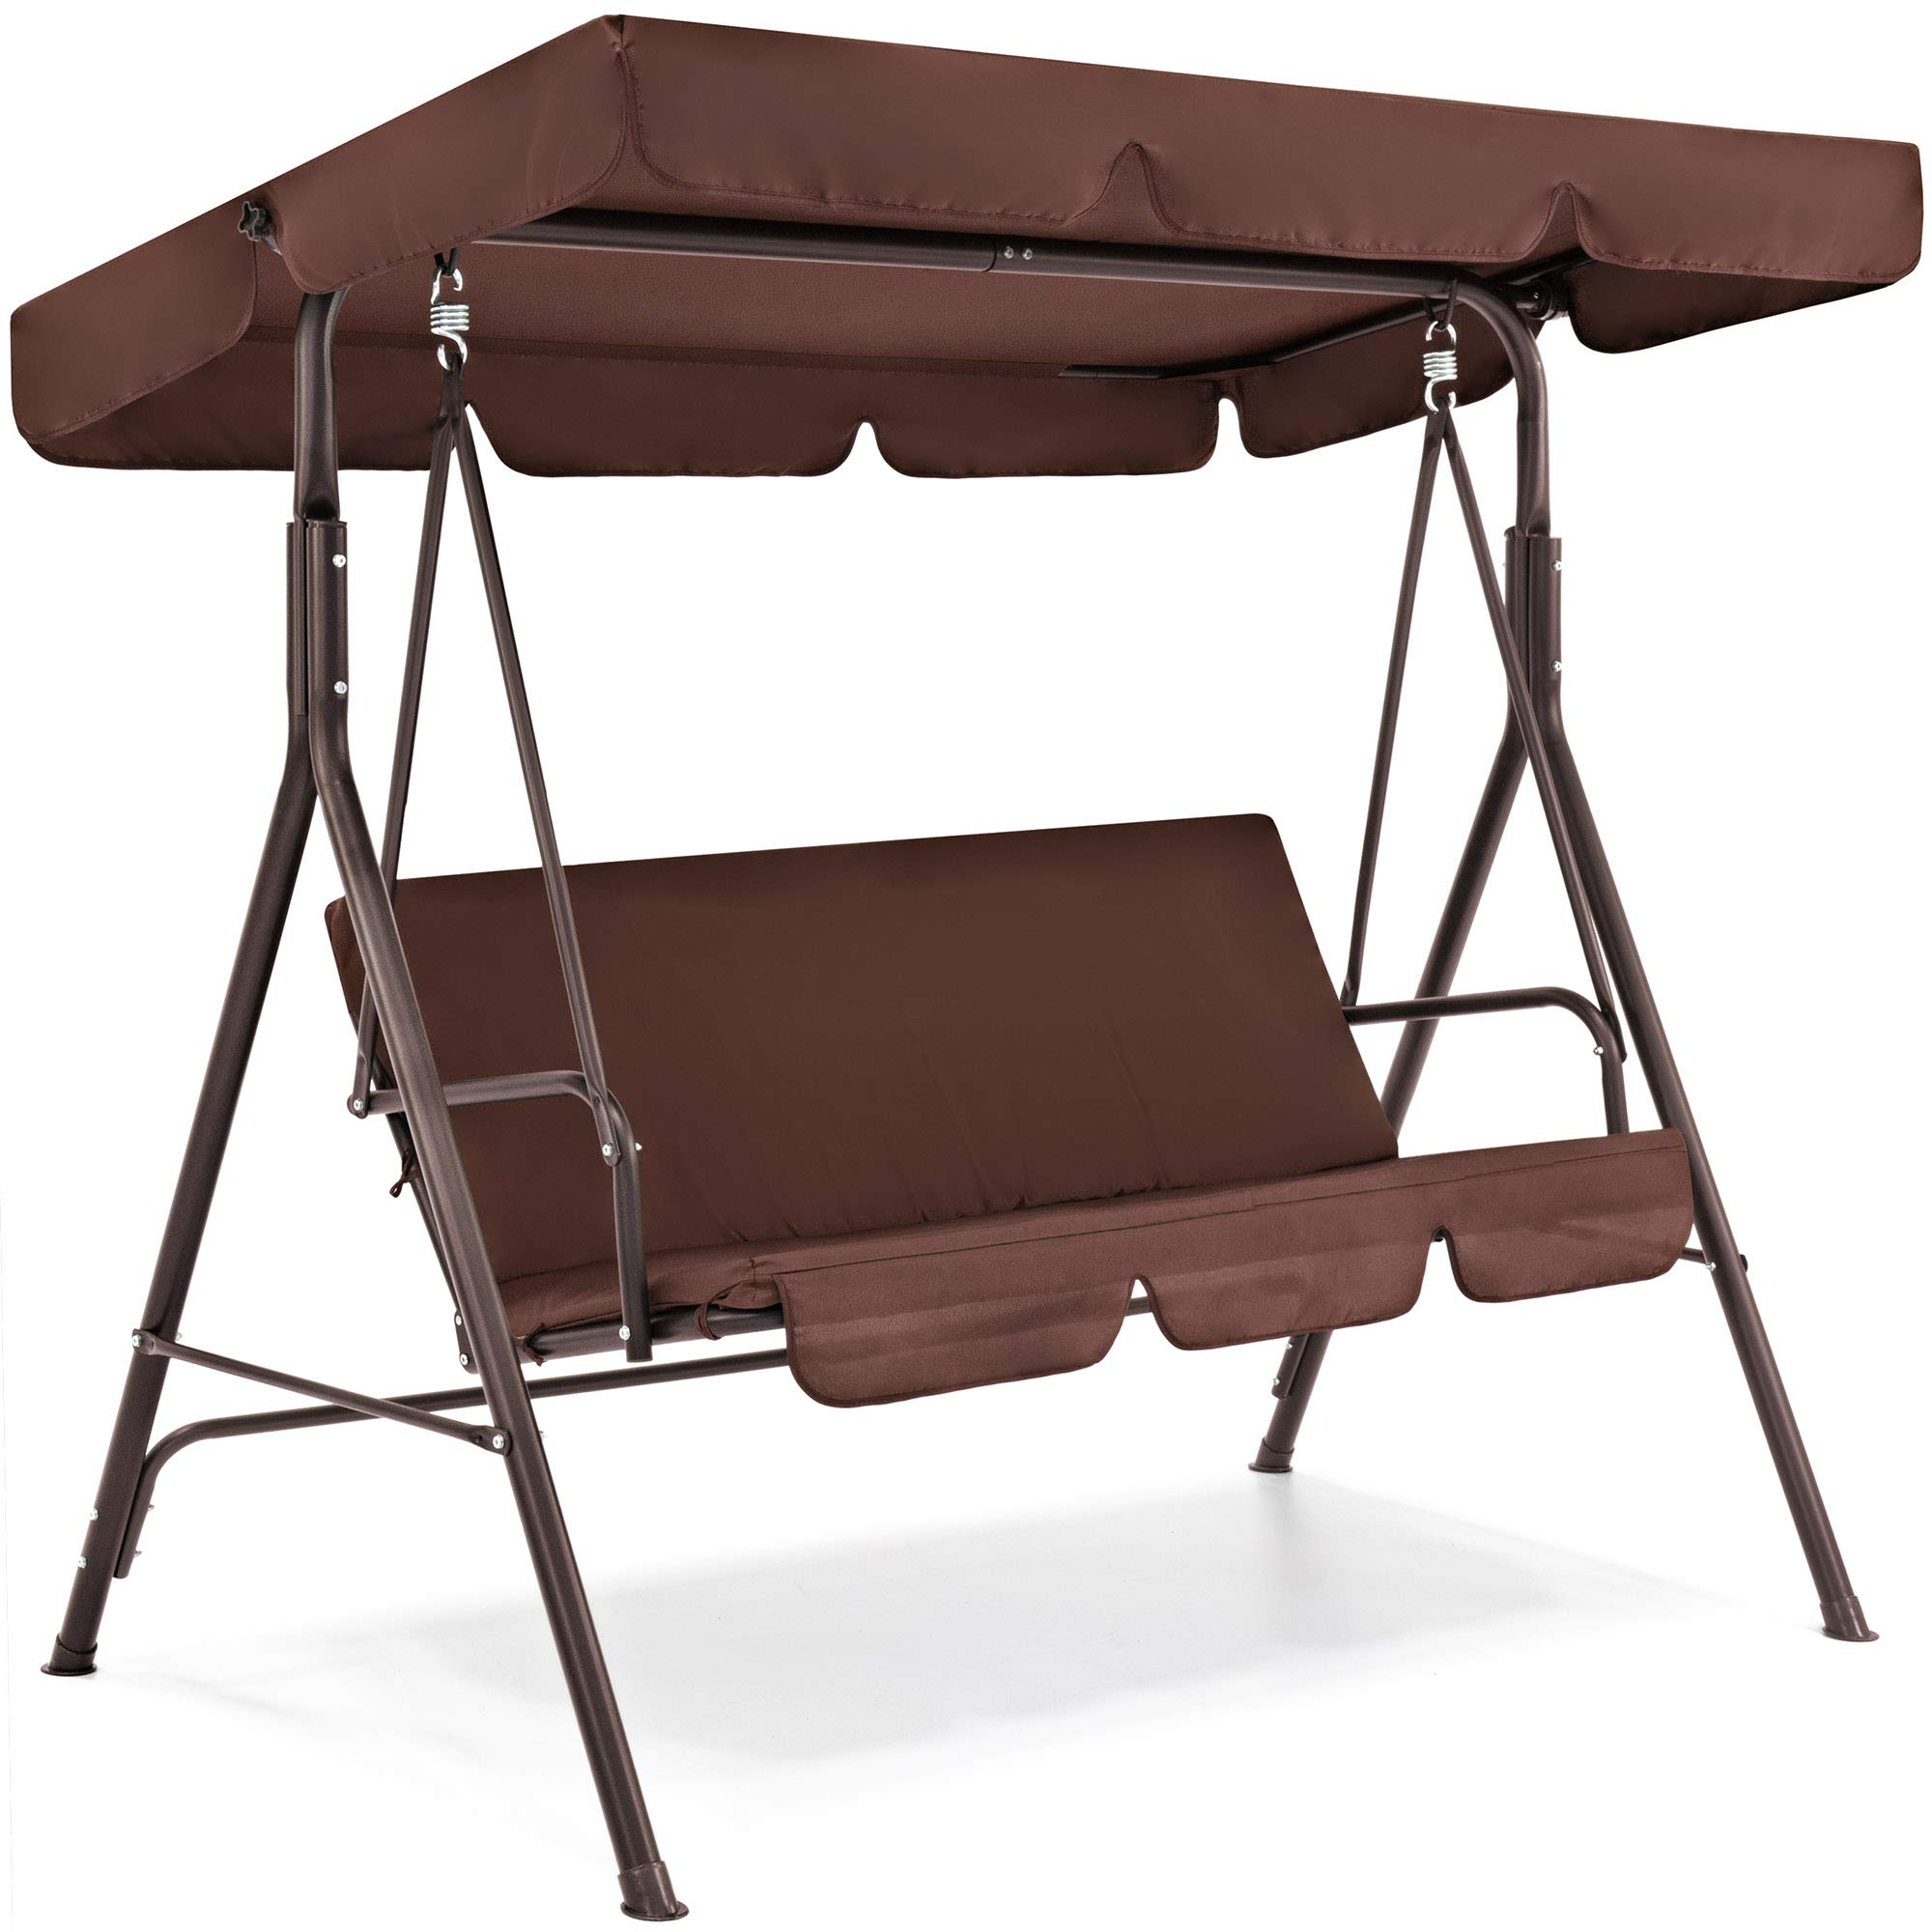 Best Choice Products 2-Person Outdoor Large Convertible Canopy Swing Glider Lounge Chair w/Removable Cushions